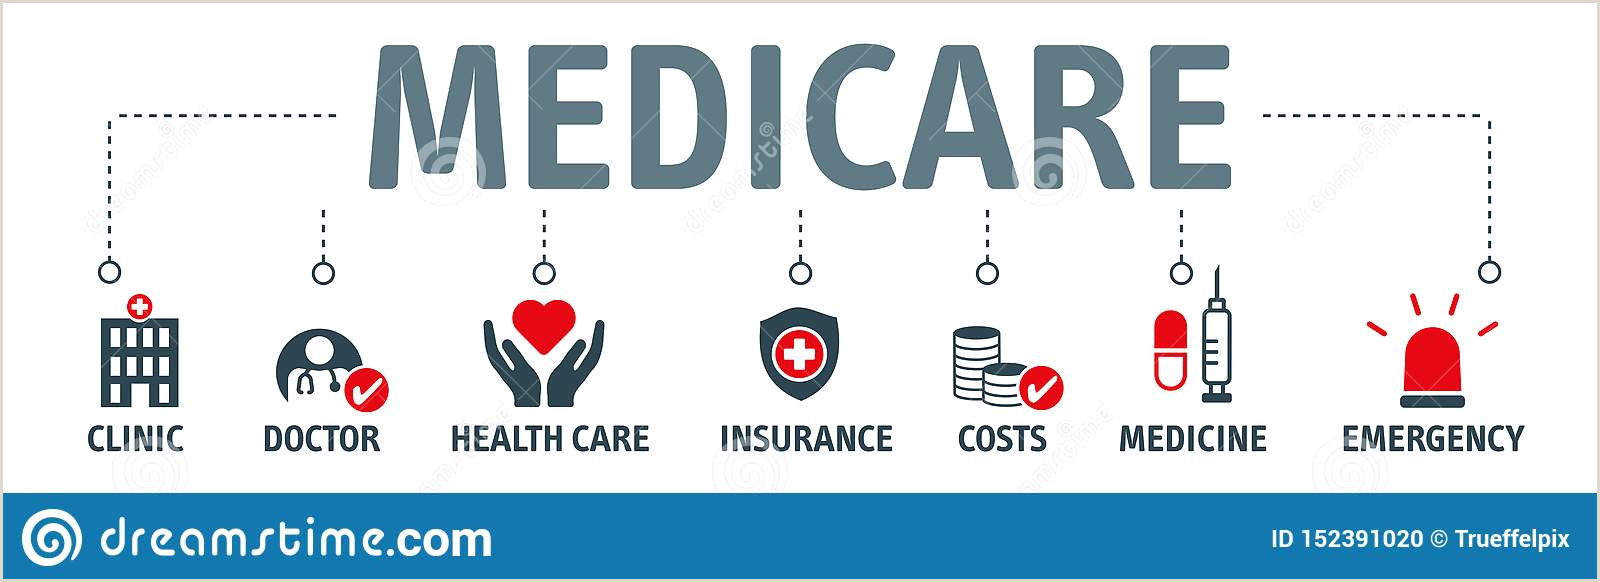 Best Business Cards Medicare Medicare Icons Stock Illustrations – 395 Medicare Icons